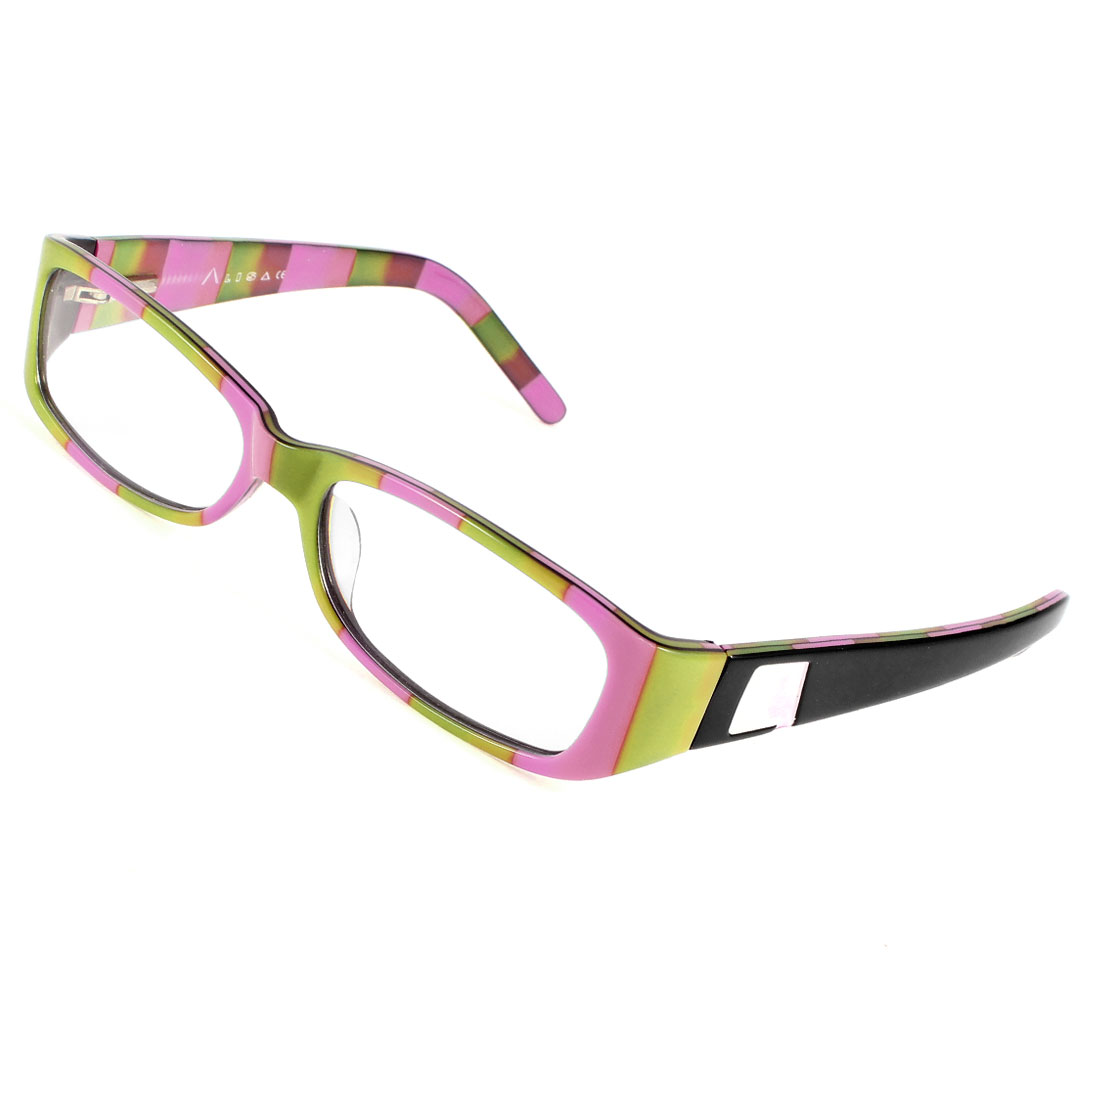 Black Plastic Arms Pink Green Frame Clear Lens Leisure Plain Glasses for Unisex